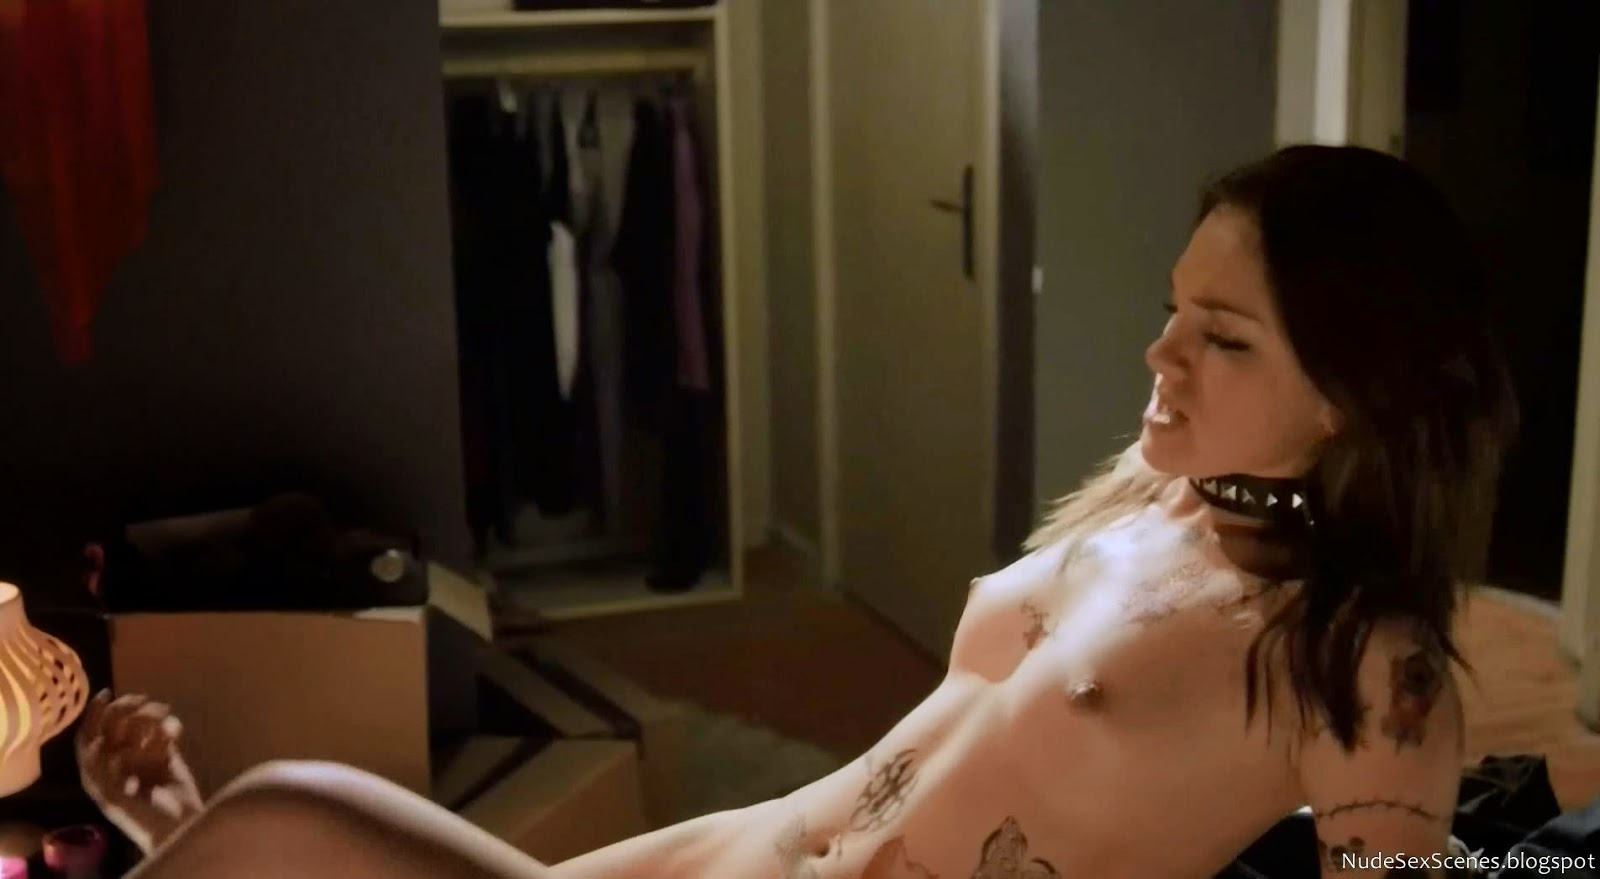 Tessa Harnetiaux gets screwed while shoeing her nude body with full of fake tattoos in Girl's Guide to Depravity Season 2 Episode 2 (2013) - The Do Me Rule